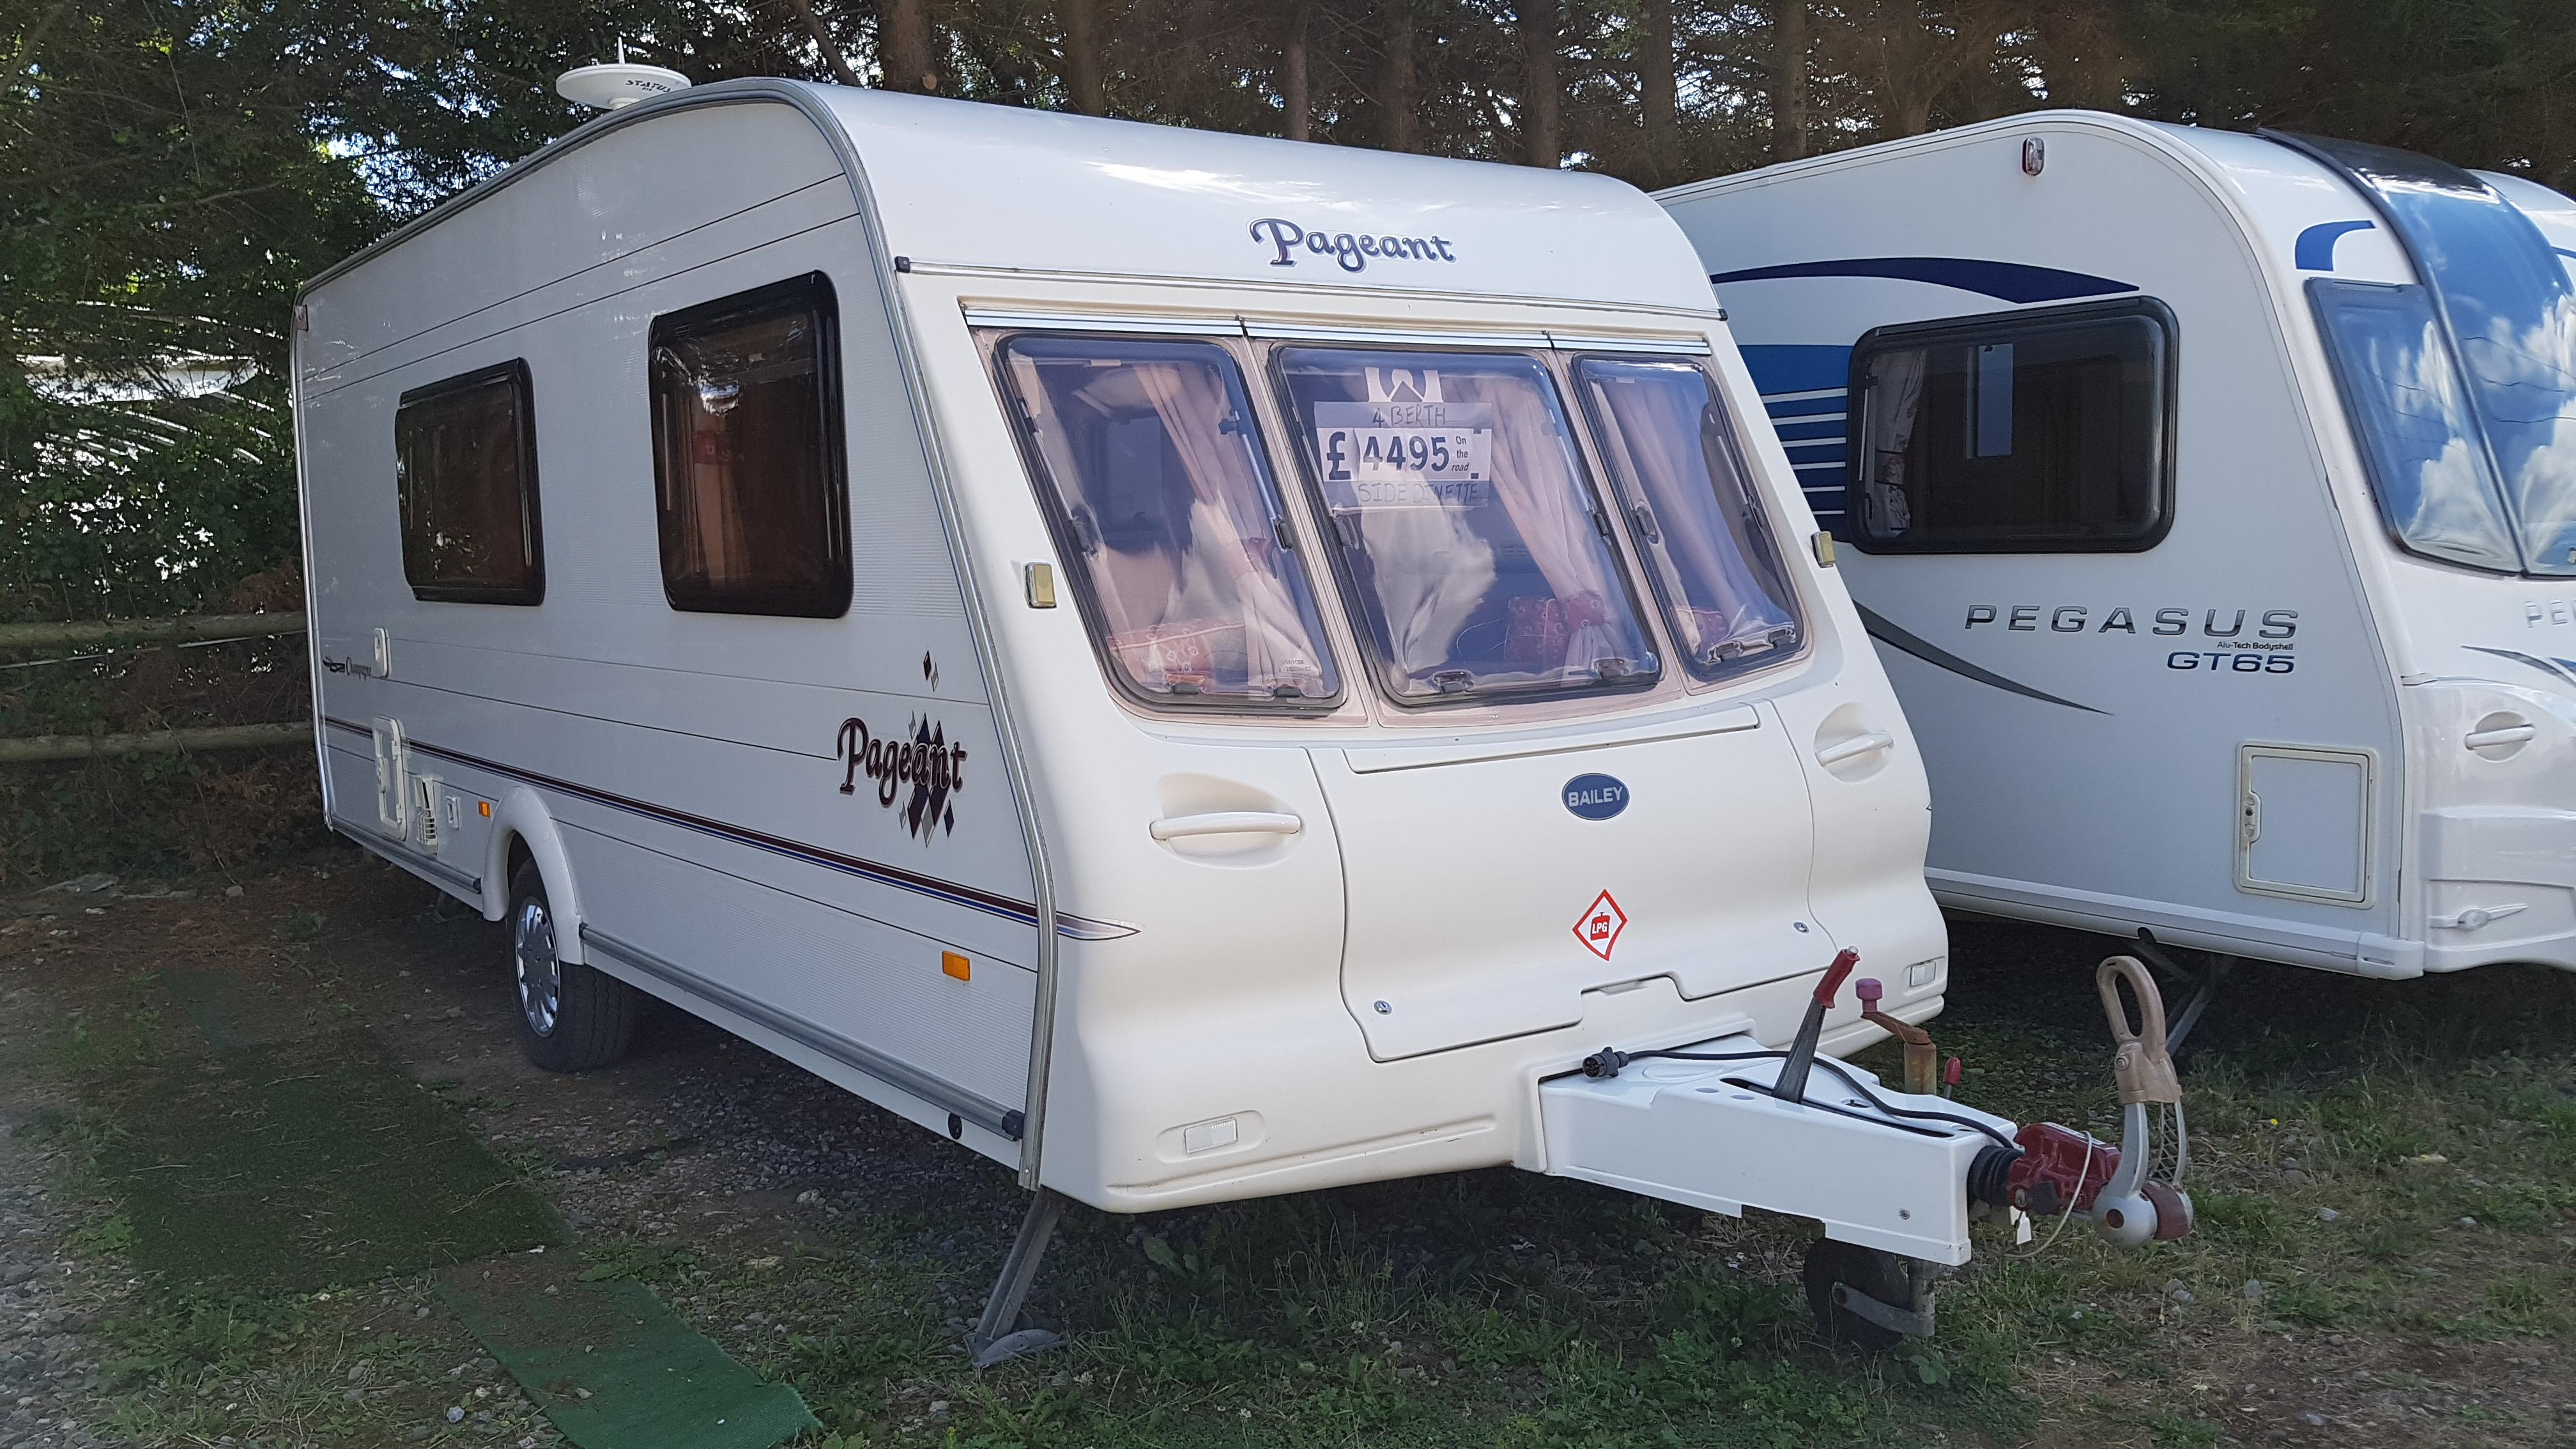 2002 Bailey Pageant Champagne 4 Berth Side Dinette End Washroom Caravan